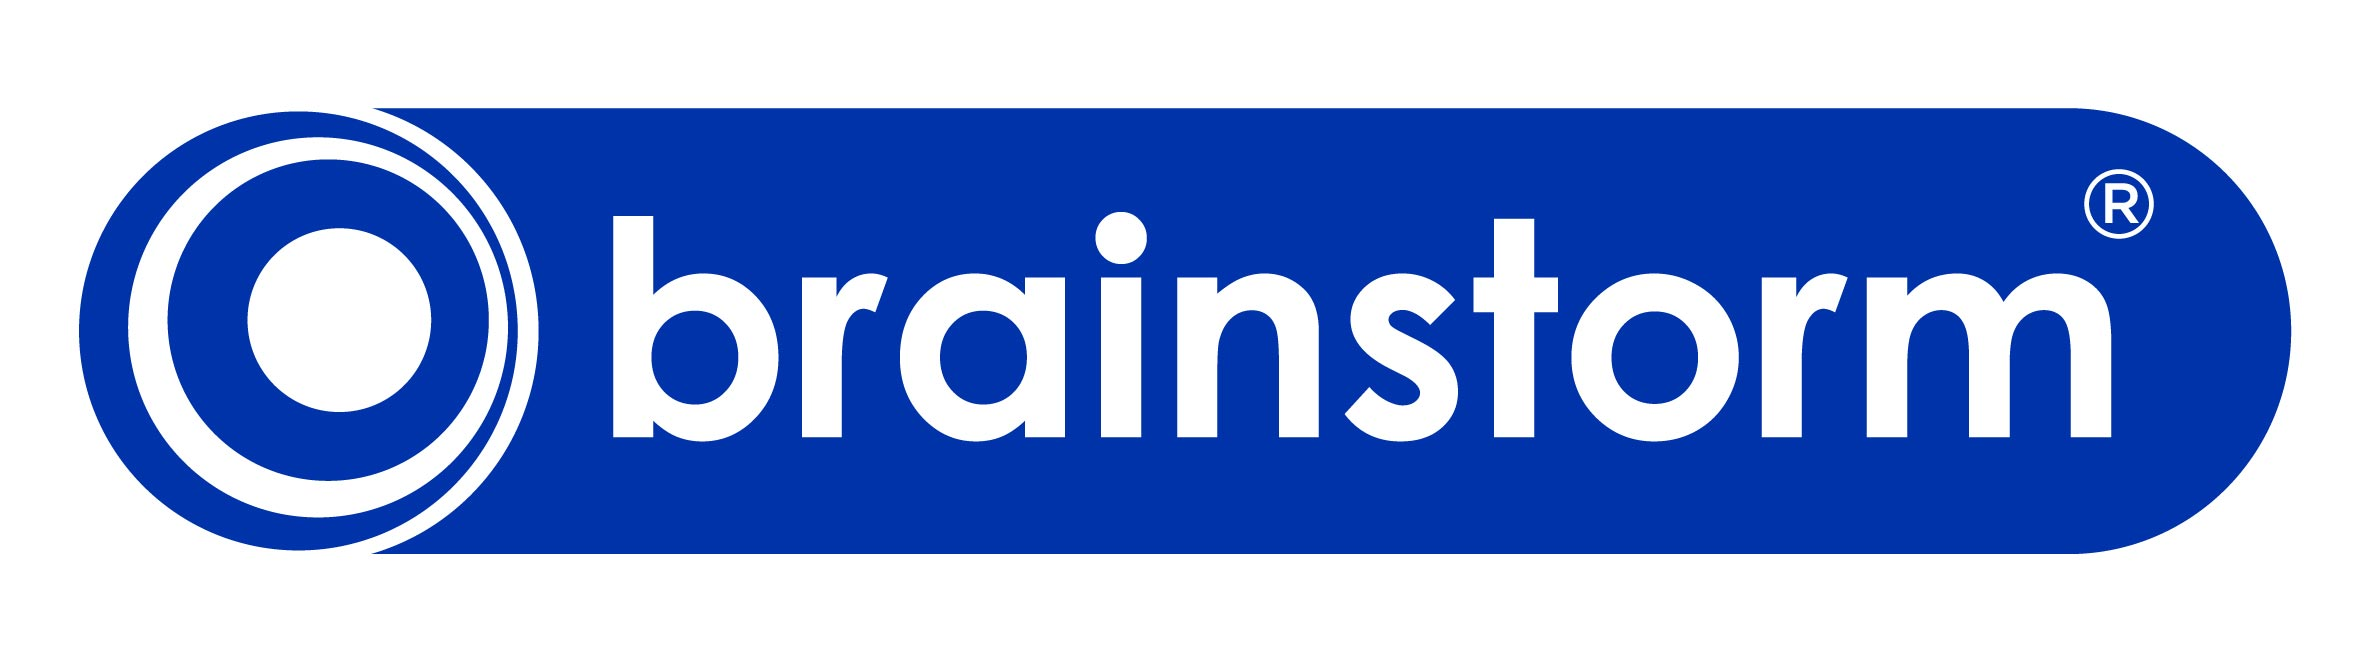 Brainstorm Ltd